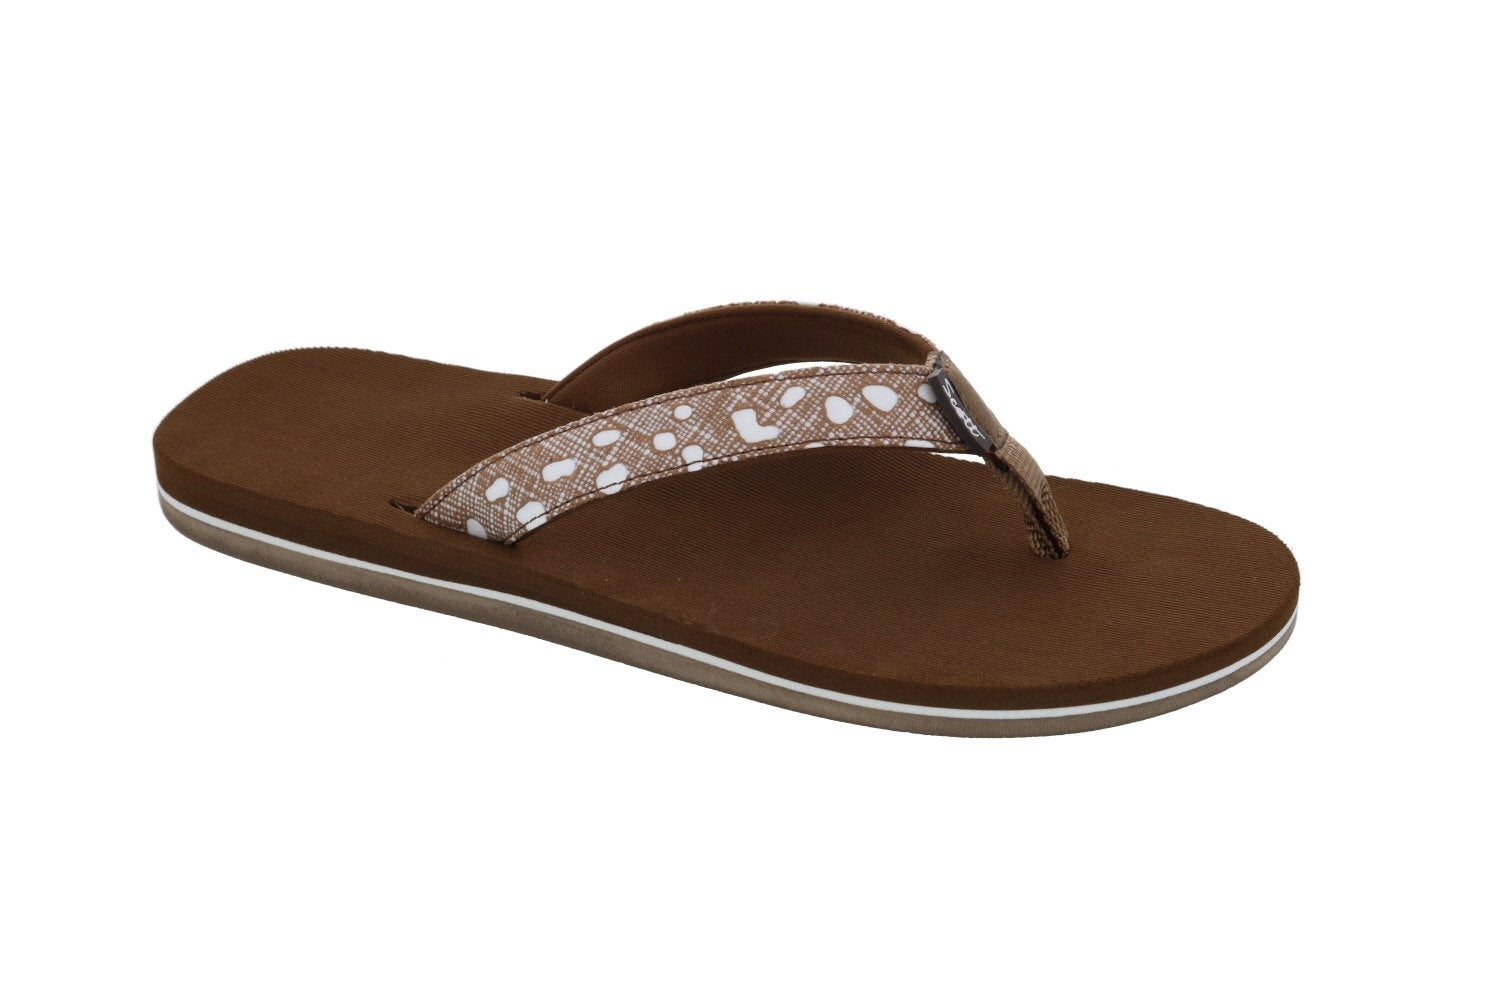 Women's Hanalei Polkadot Strap Sandals in Brown or Black - AlohaShoes.com